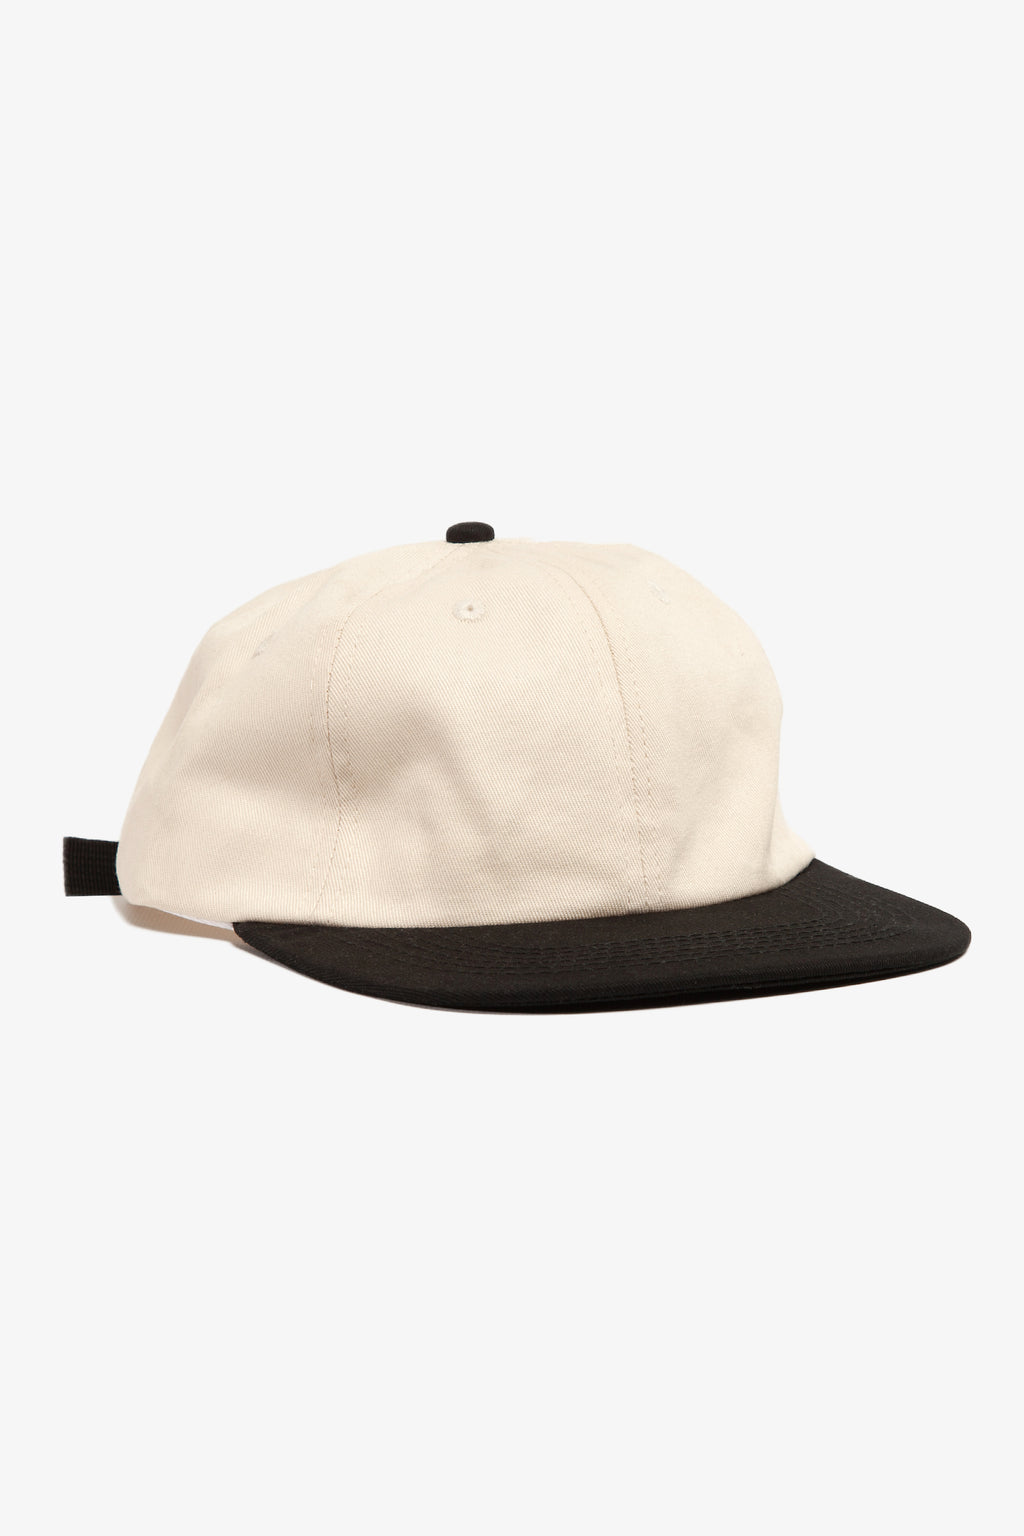 Power House - Perfect 6-Panel Cap - Natural/Black